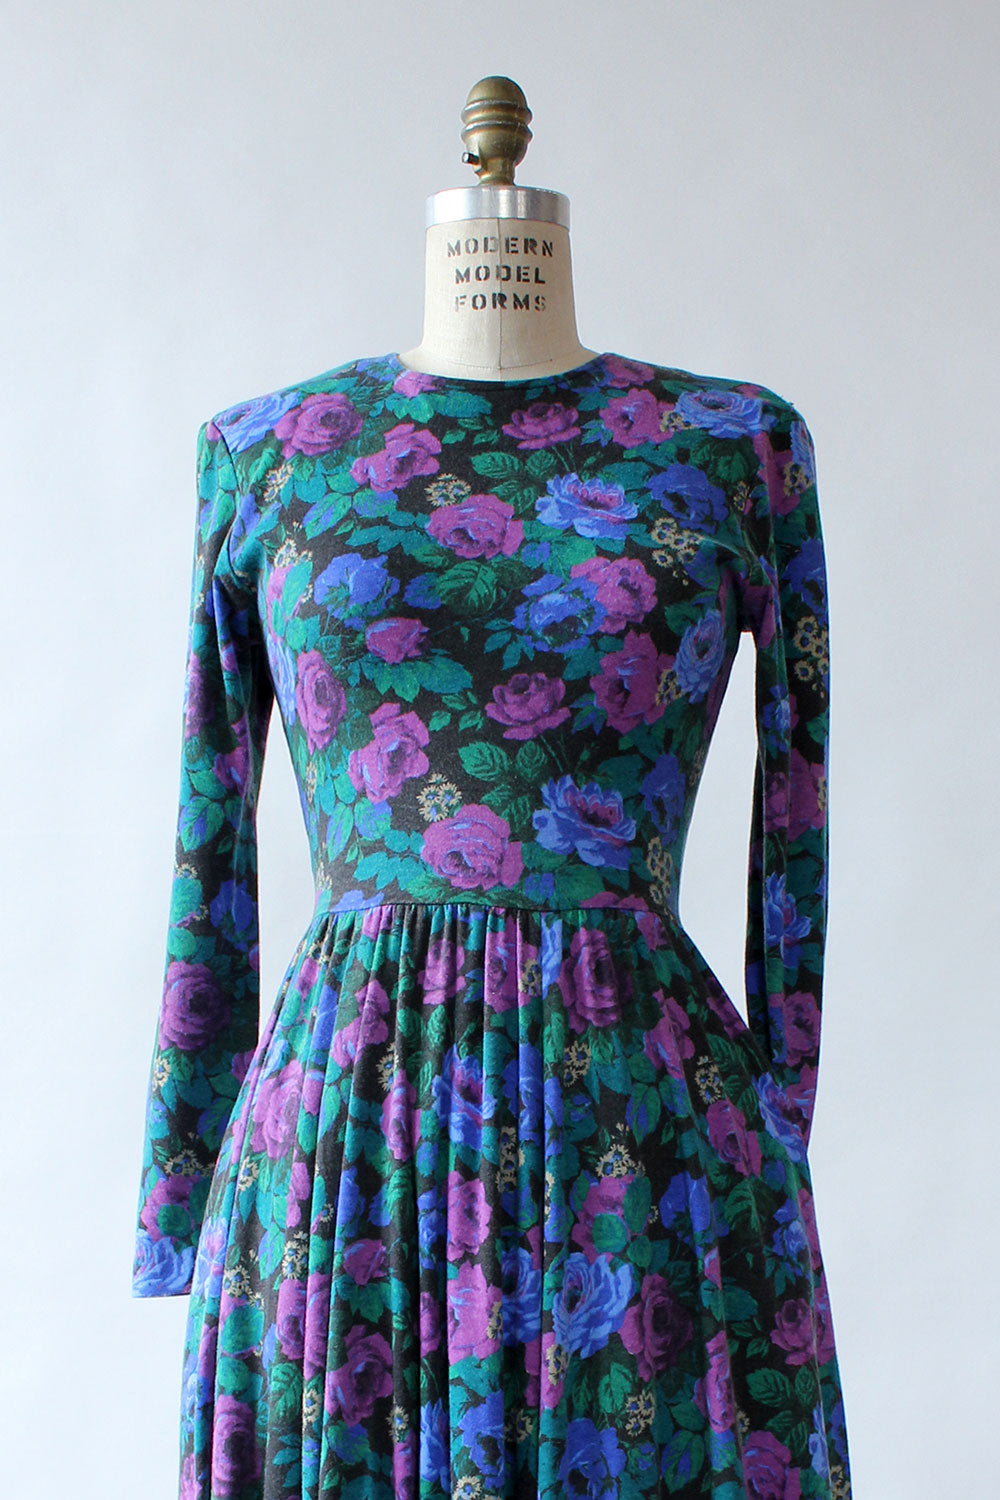 Moody Floral Flare Dress S/M